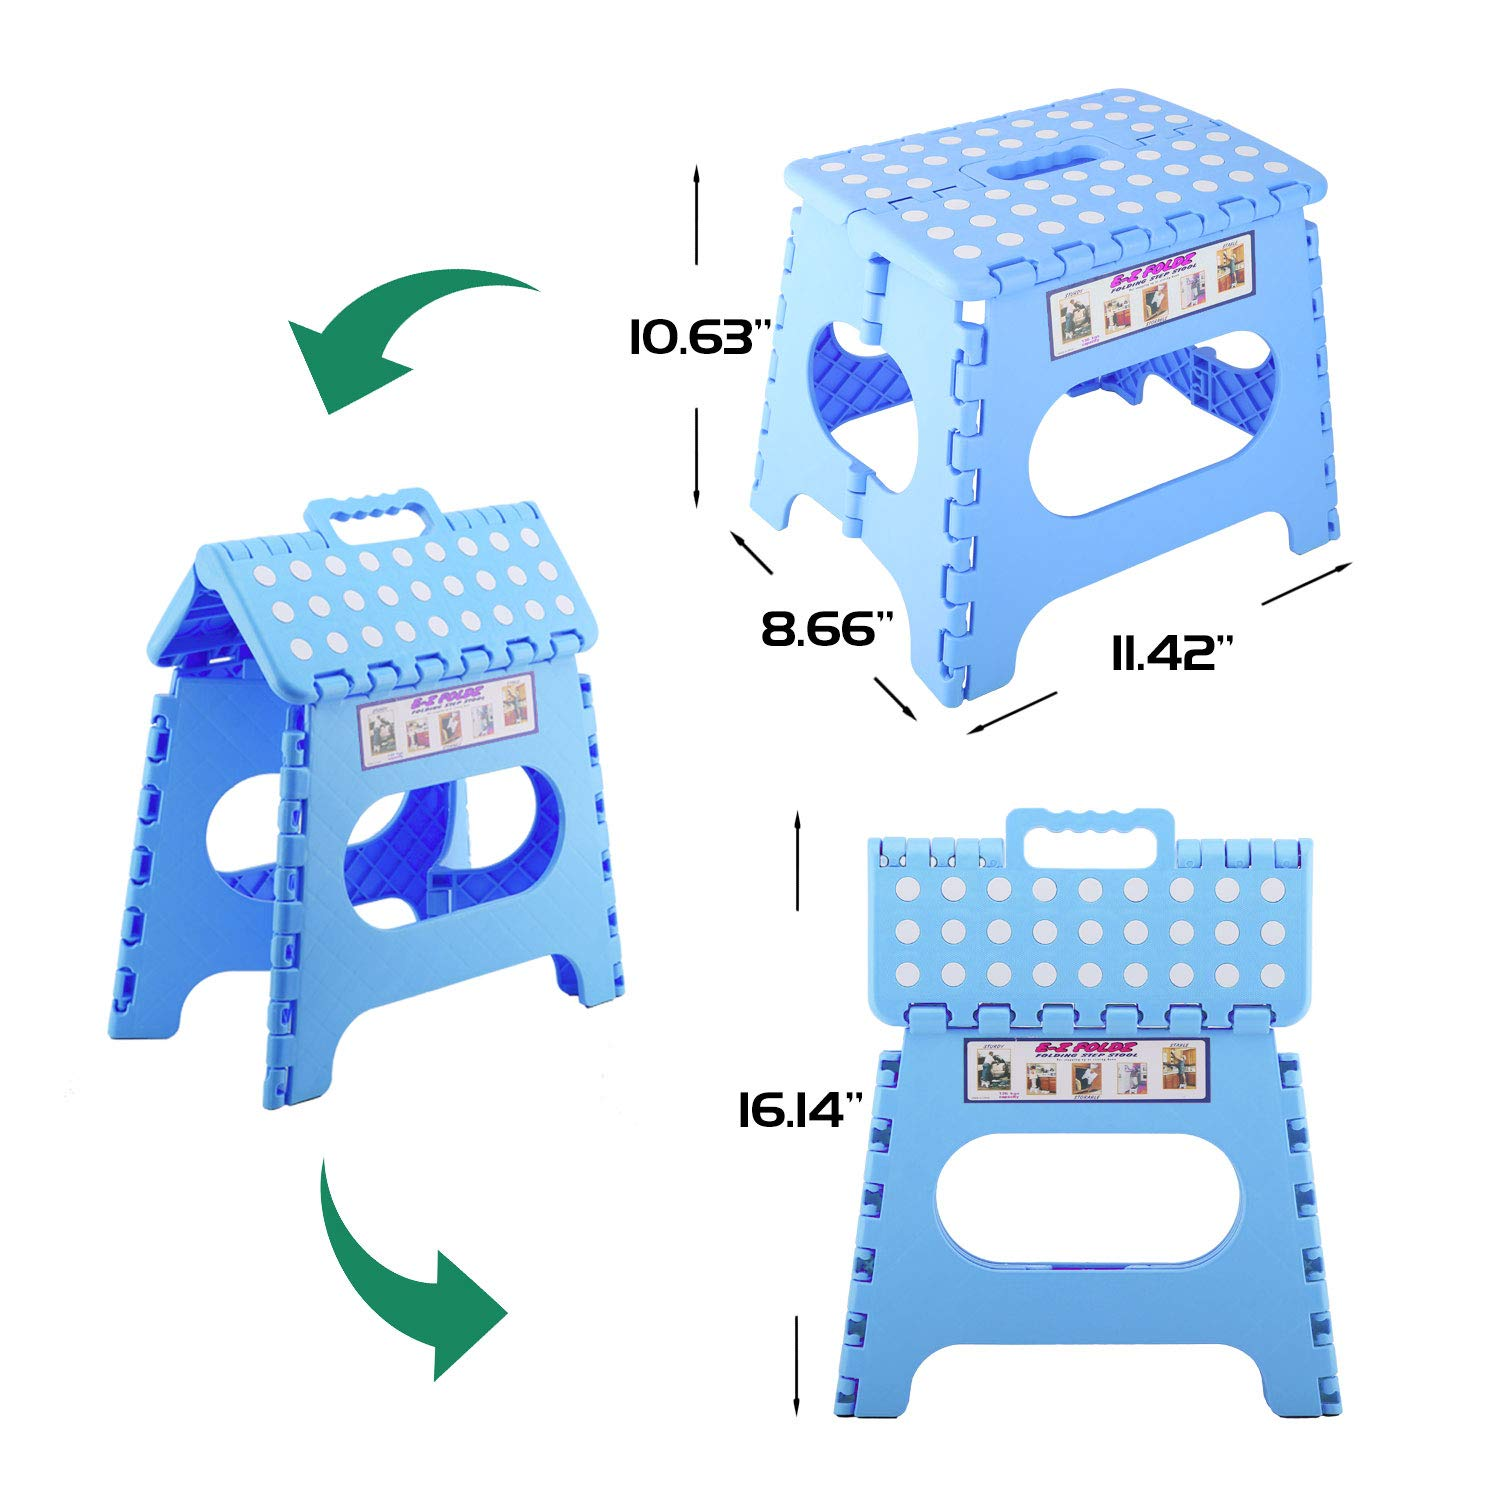 11 Portable Foldable Step Stool Compact Chair Seat with Non-Slip Surface for Home Bathroom Kitchen Garden etc Pink Kids Adults Use Housolution Folding Stool